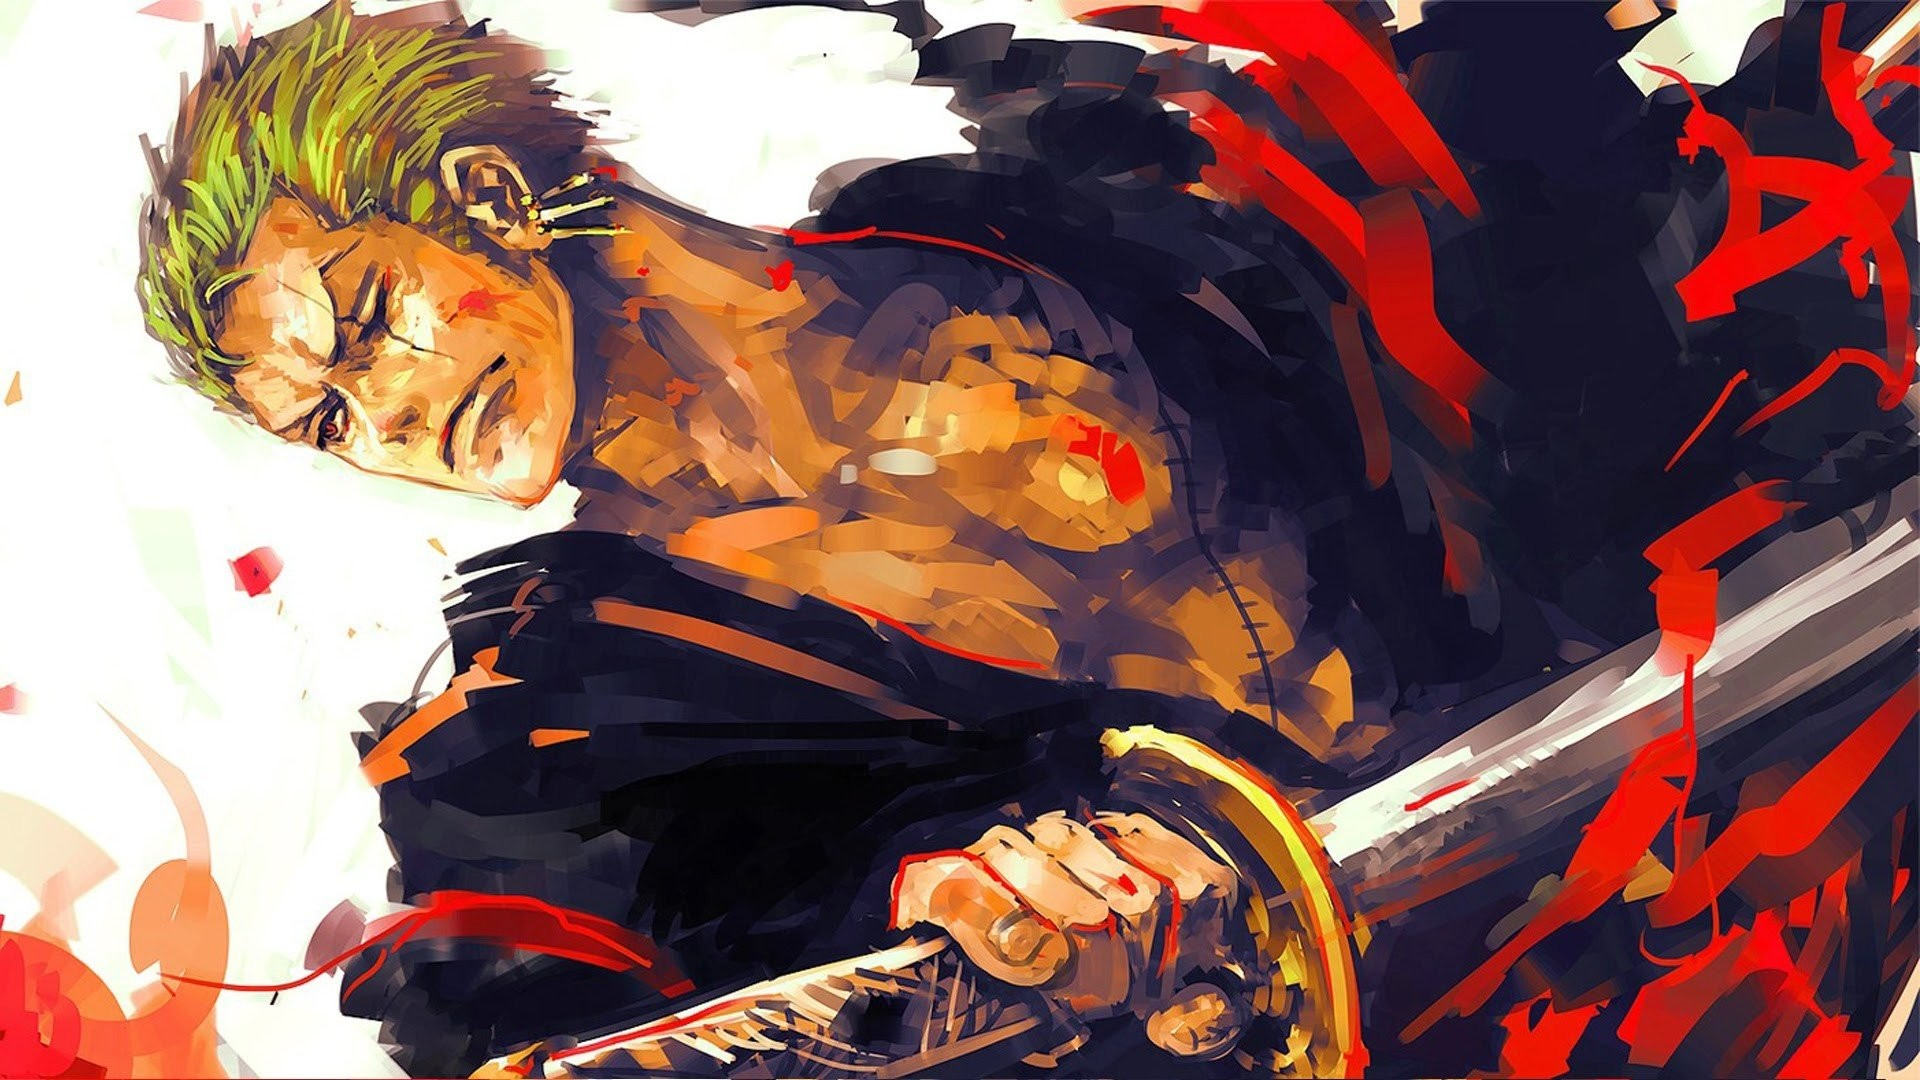 1920x1080 zoro one piece wallpaper hd #276559